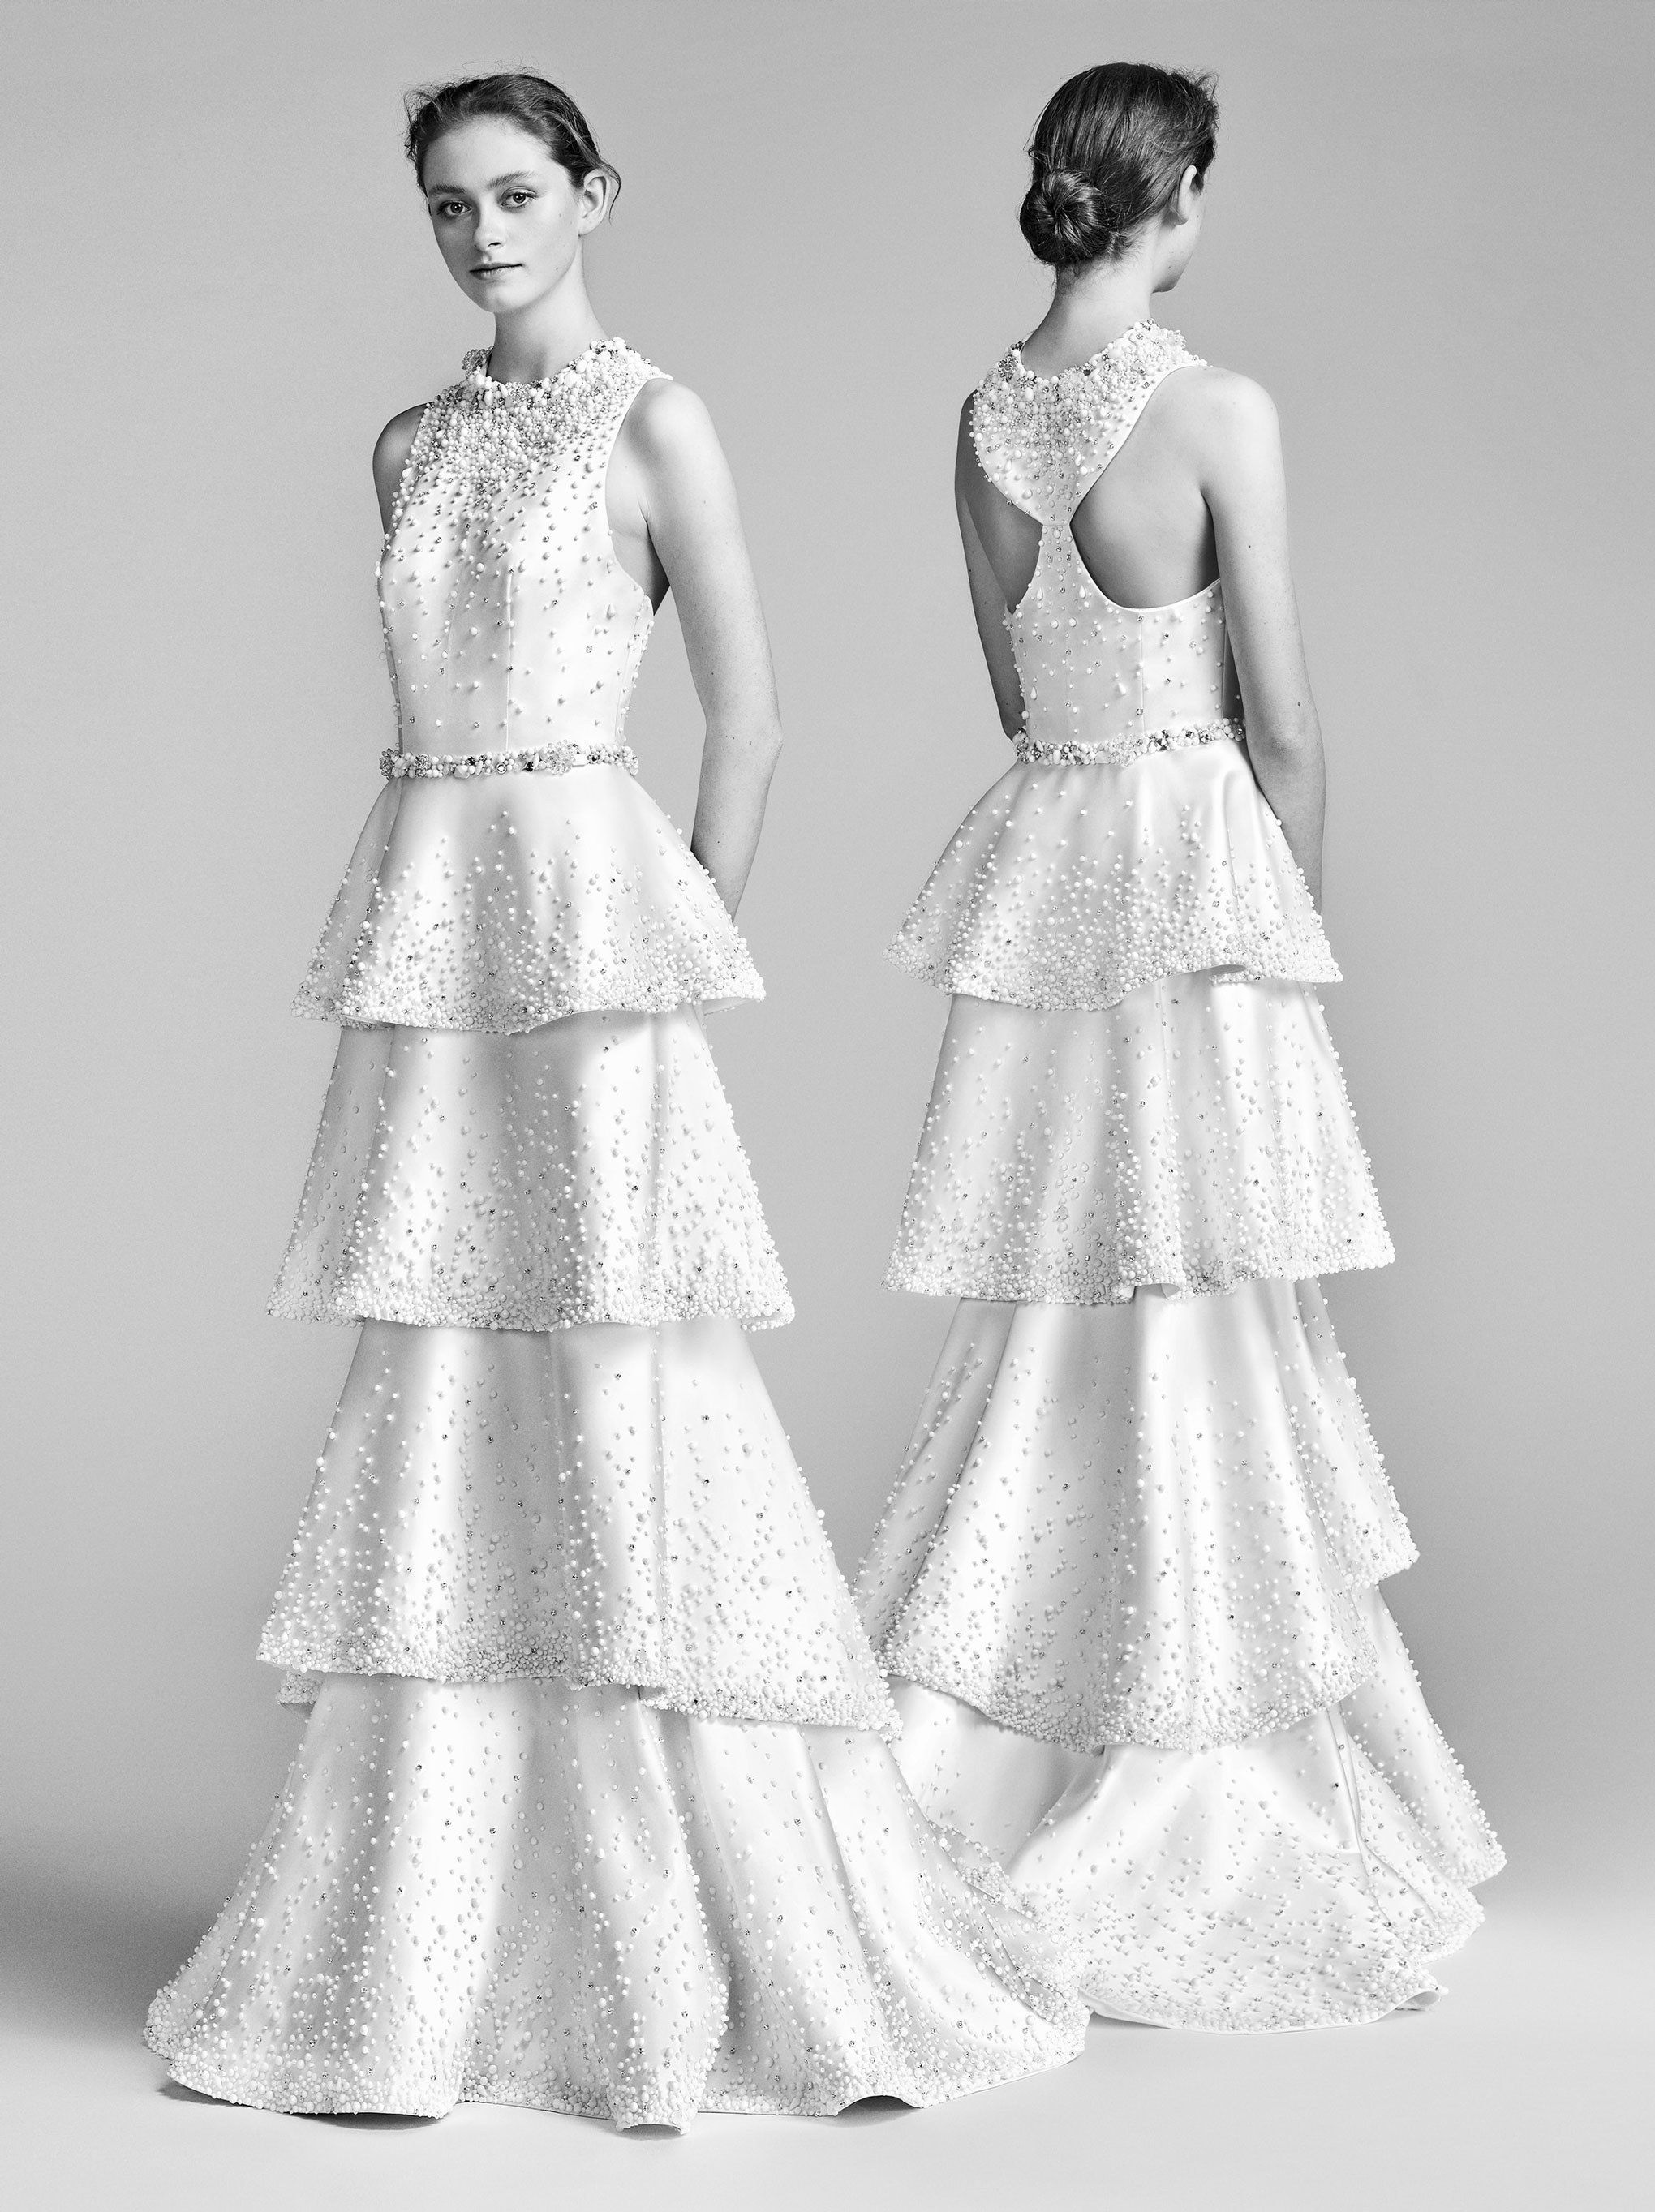 Best Of Bridal: The Most Beautiful Wedding Dresses Of Bridal Fashion ...